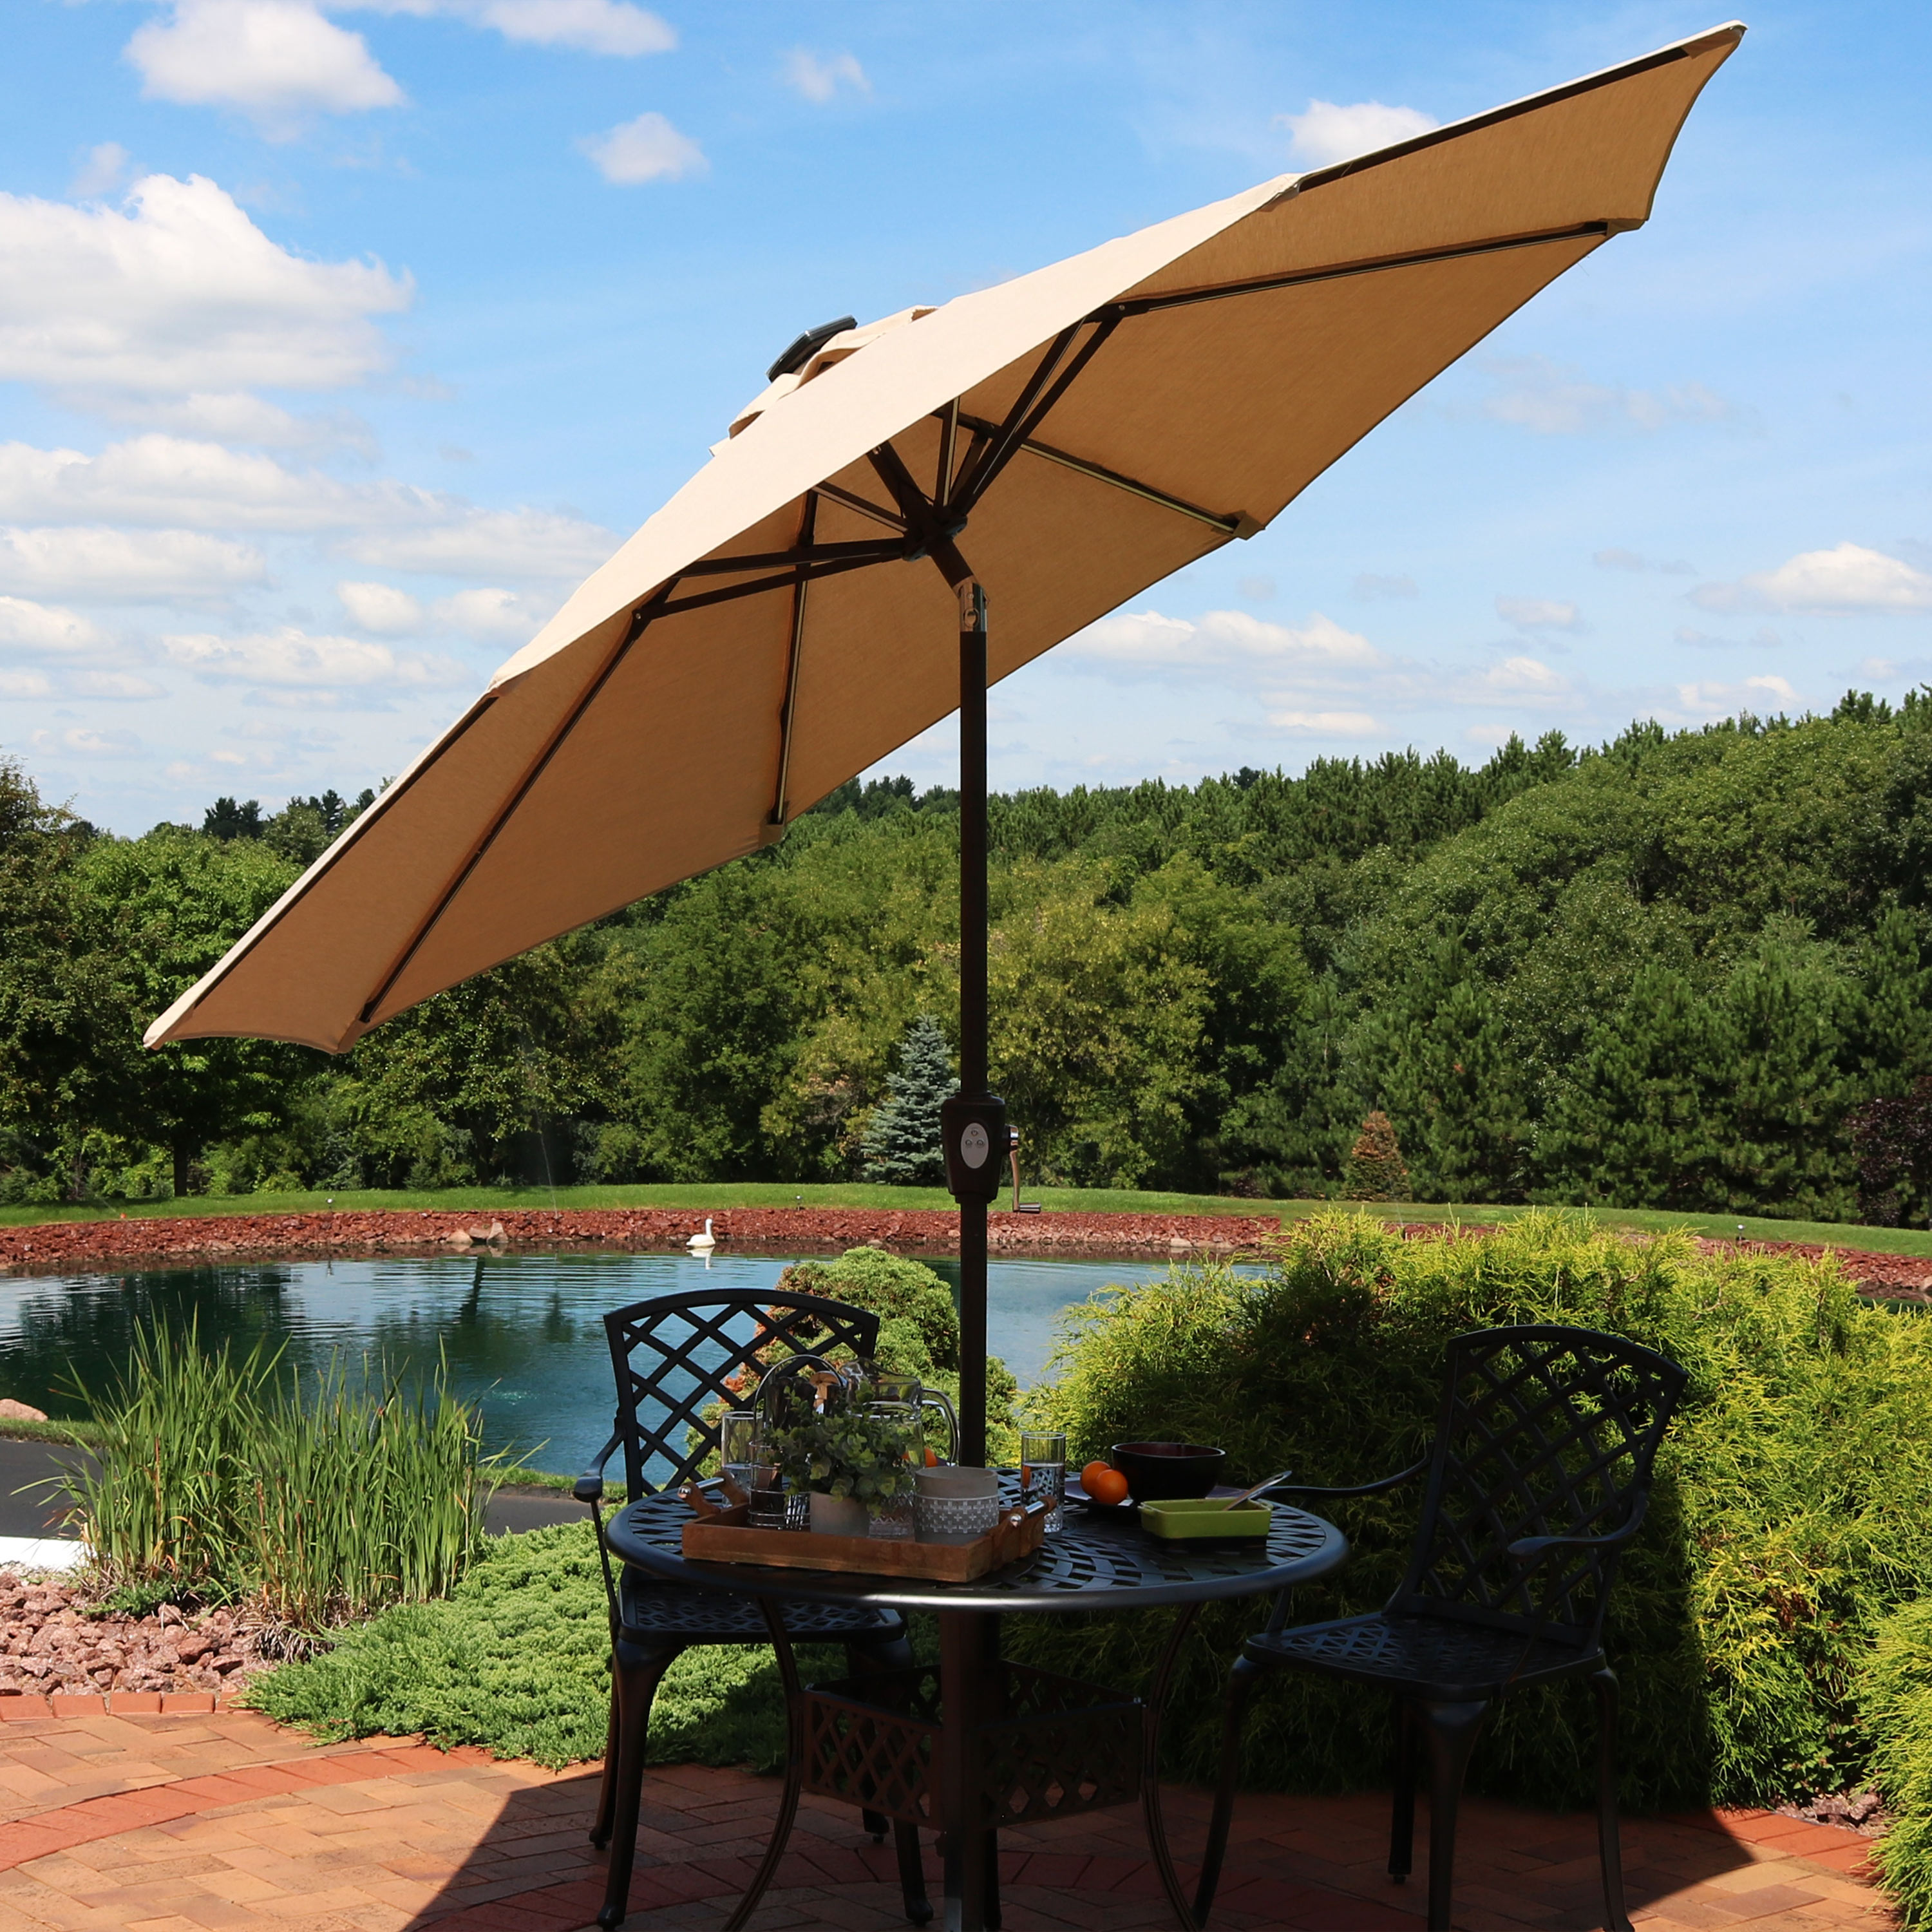 Sunnydaze 9-Foot Solar LED Aluminum Sunbrella Patio Umbrella - Choose Color